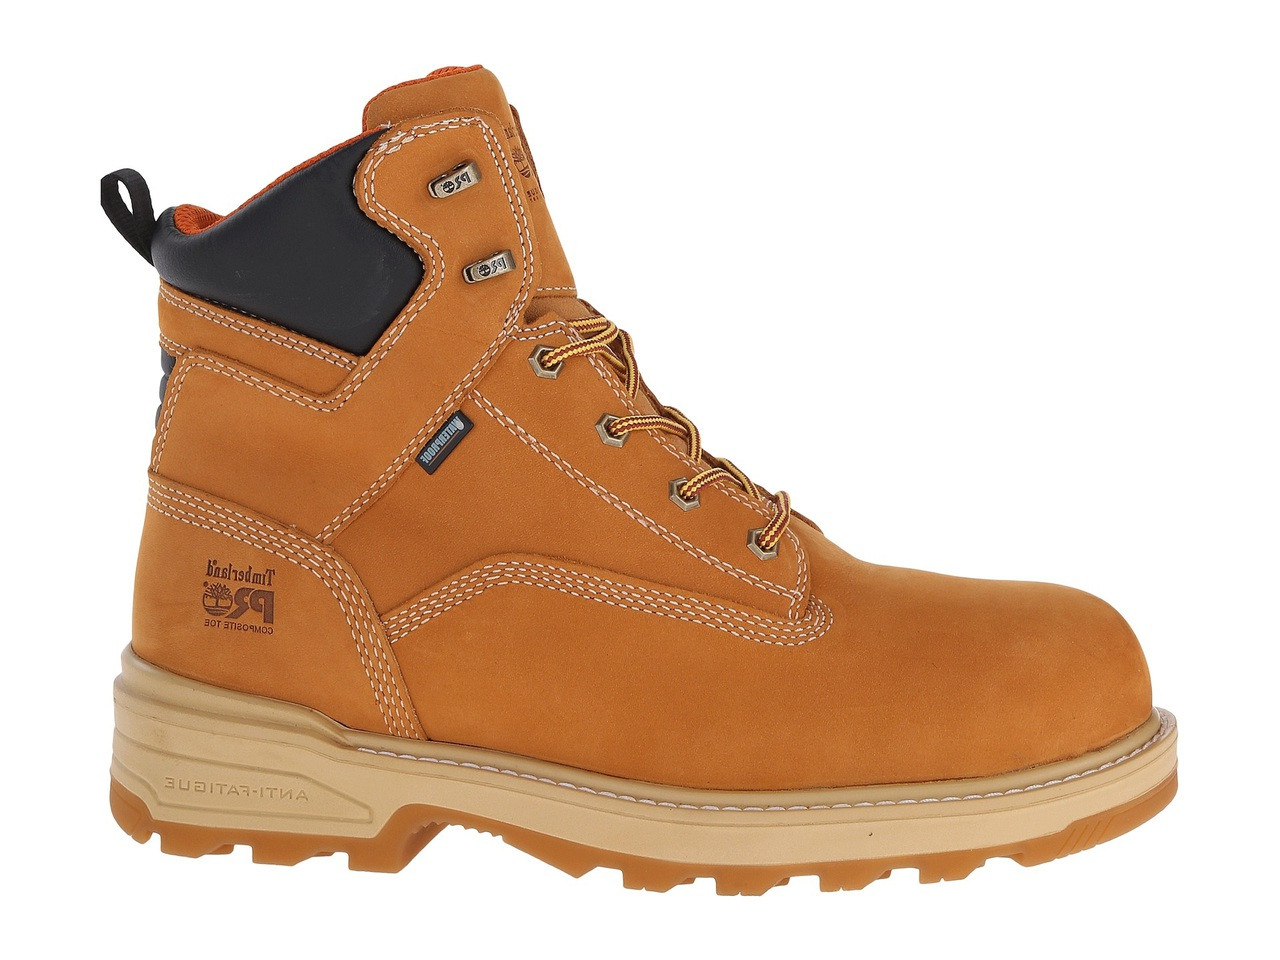 625a9225f06 Timberland Pro Men's Resistor Composite Toe Waterproof Insulated